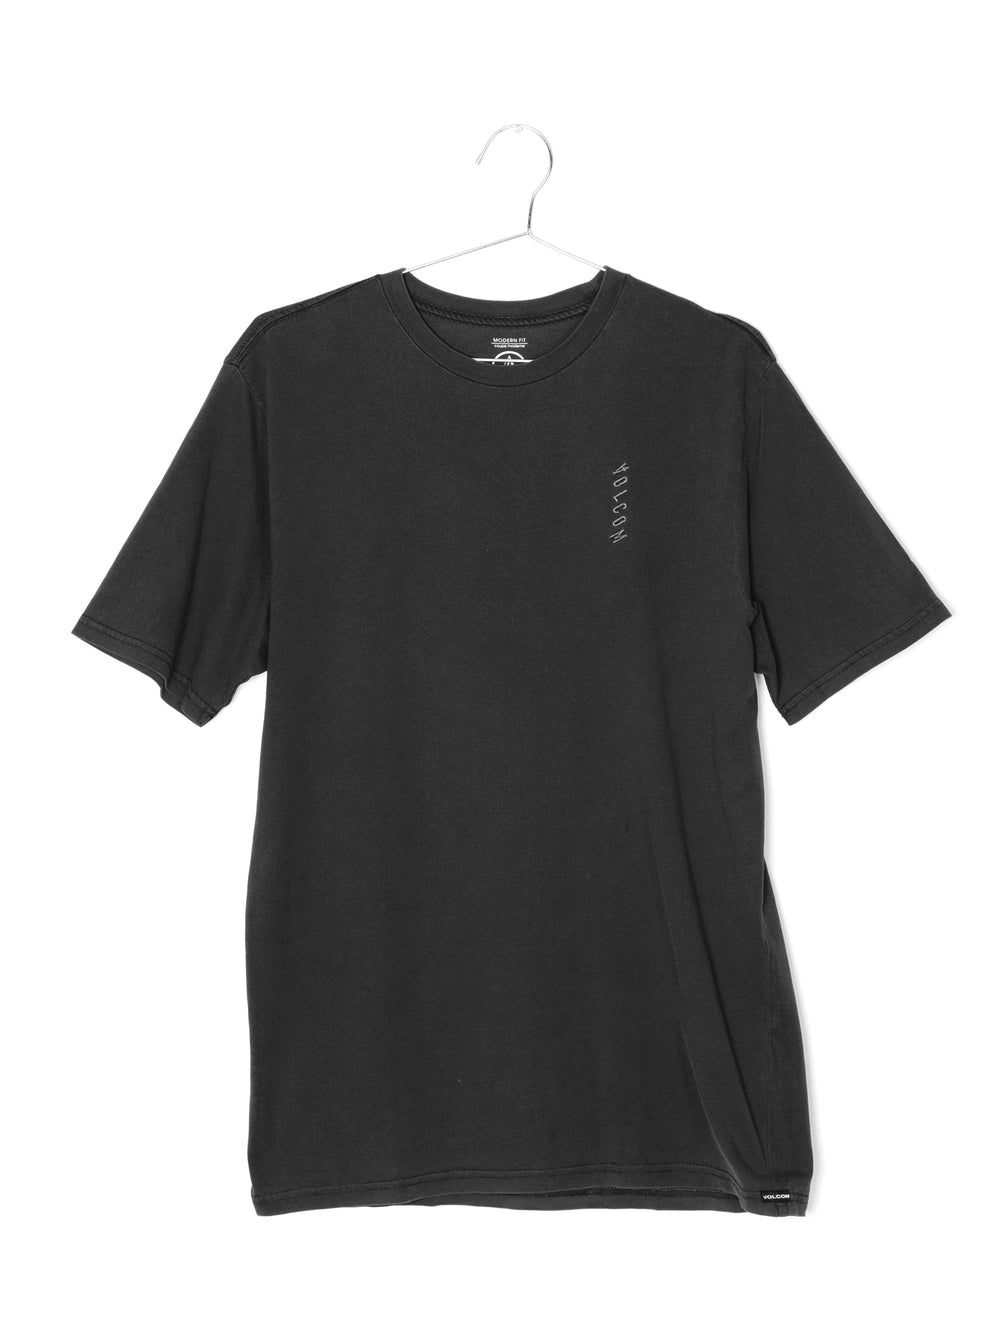 MENS VIRT SHORT SLEEVE T-SHIRT - BLACK